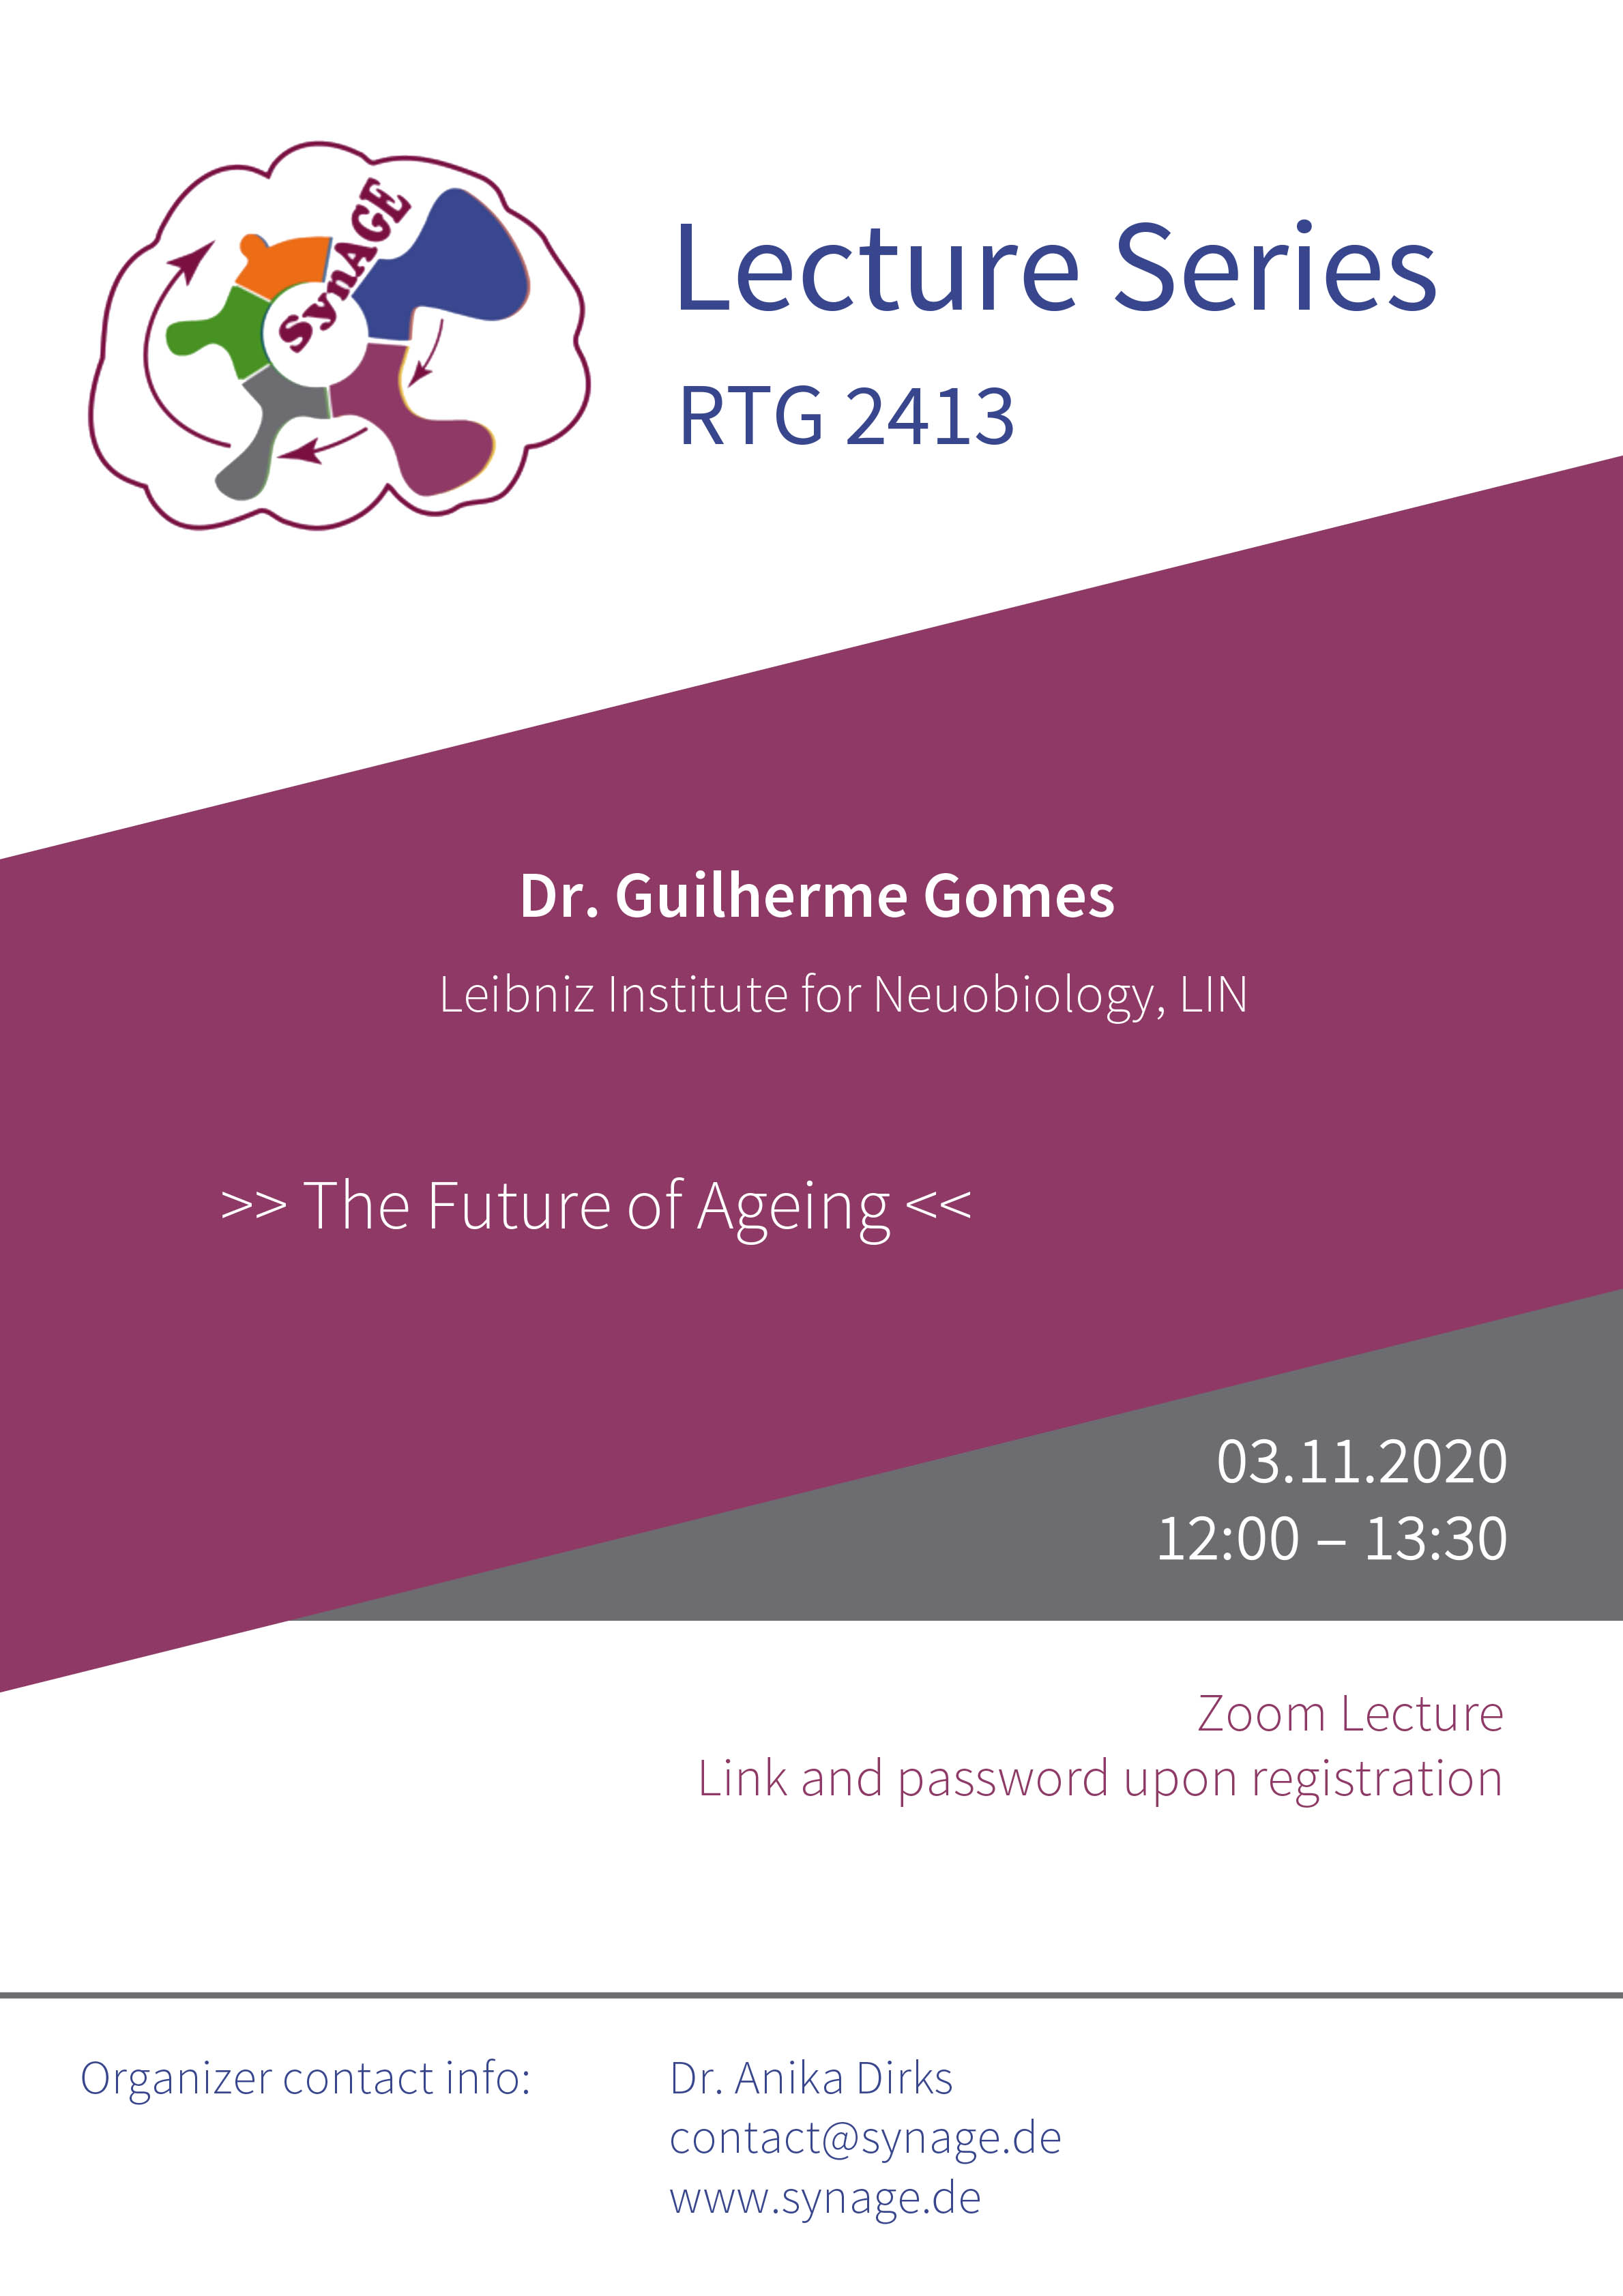 RTG 2413 SynAGE Lecture: The Future of Aging @ Zoom